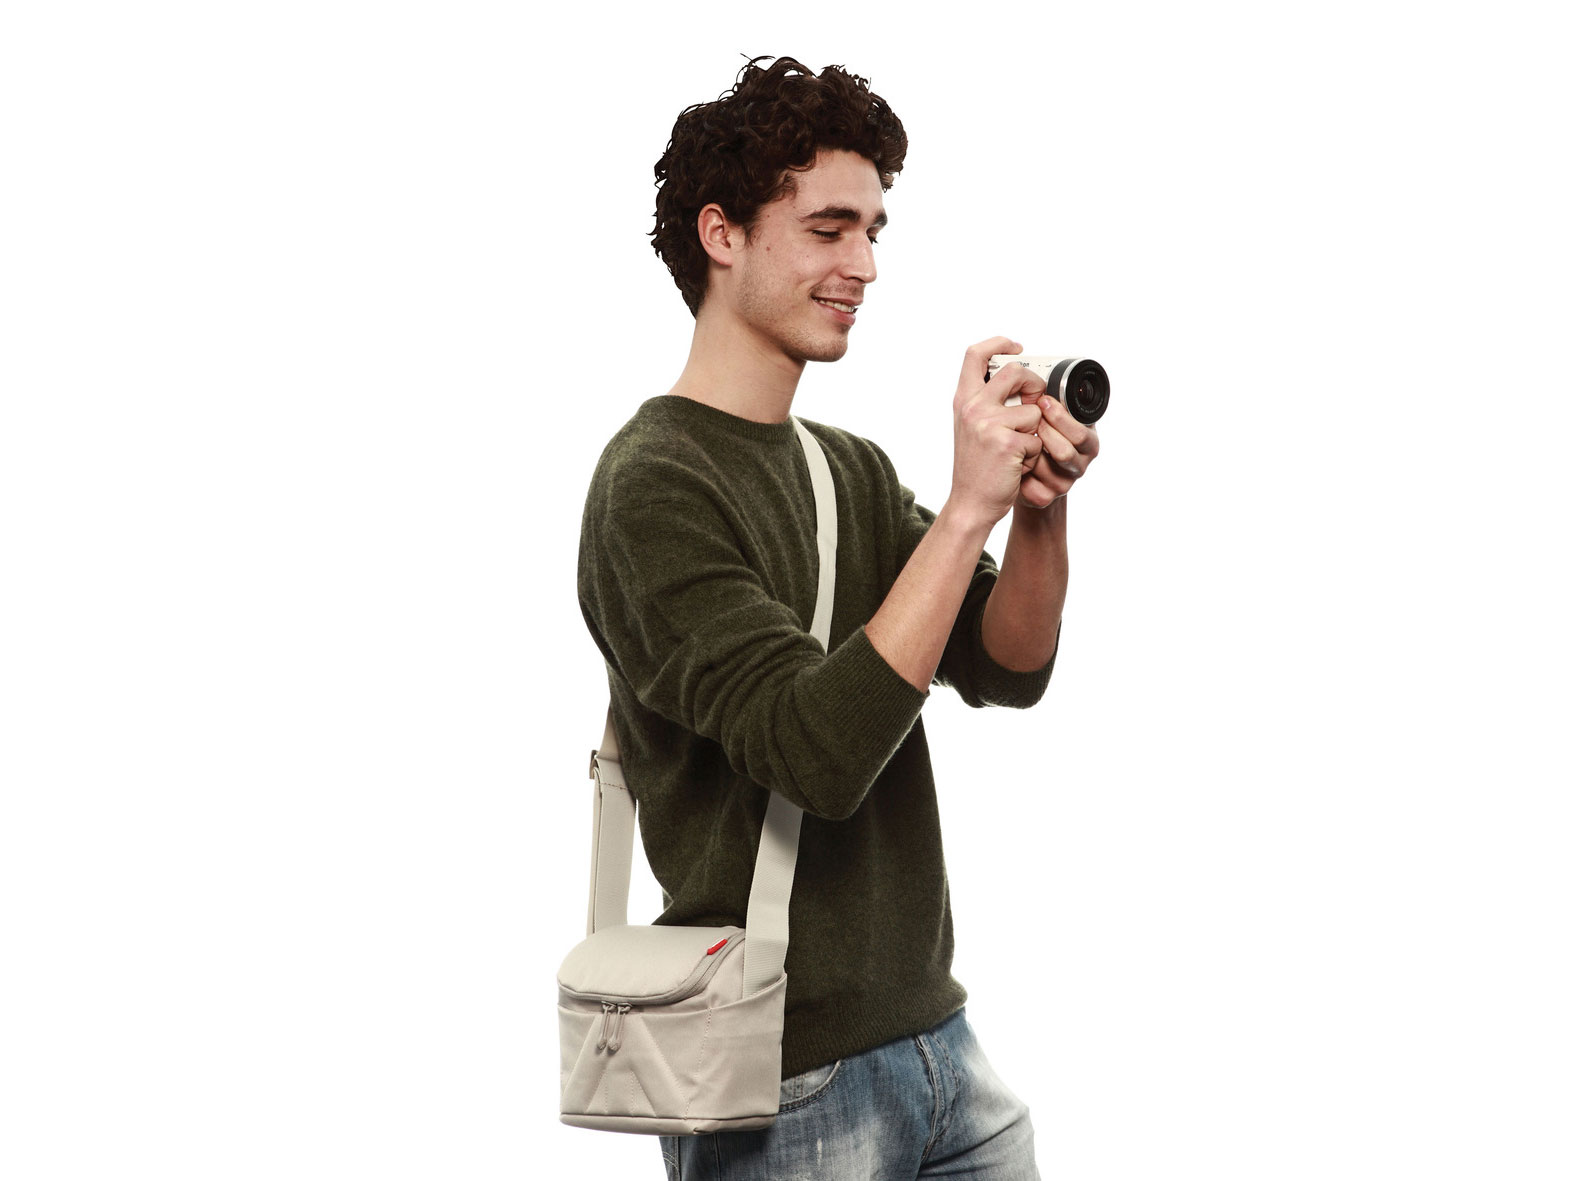 Manfrotto Launches Stileplus Line Of Stylish Camera Bags